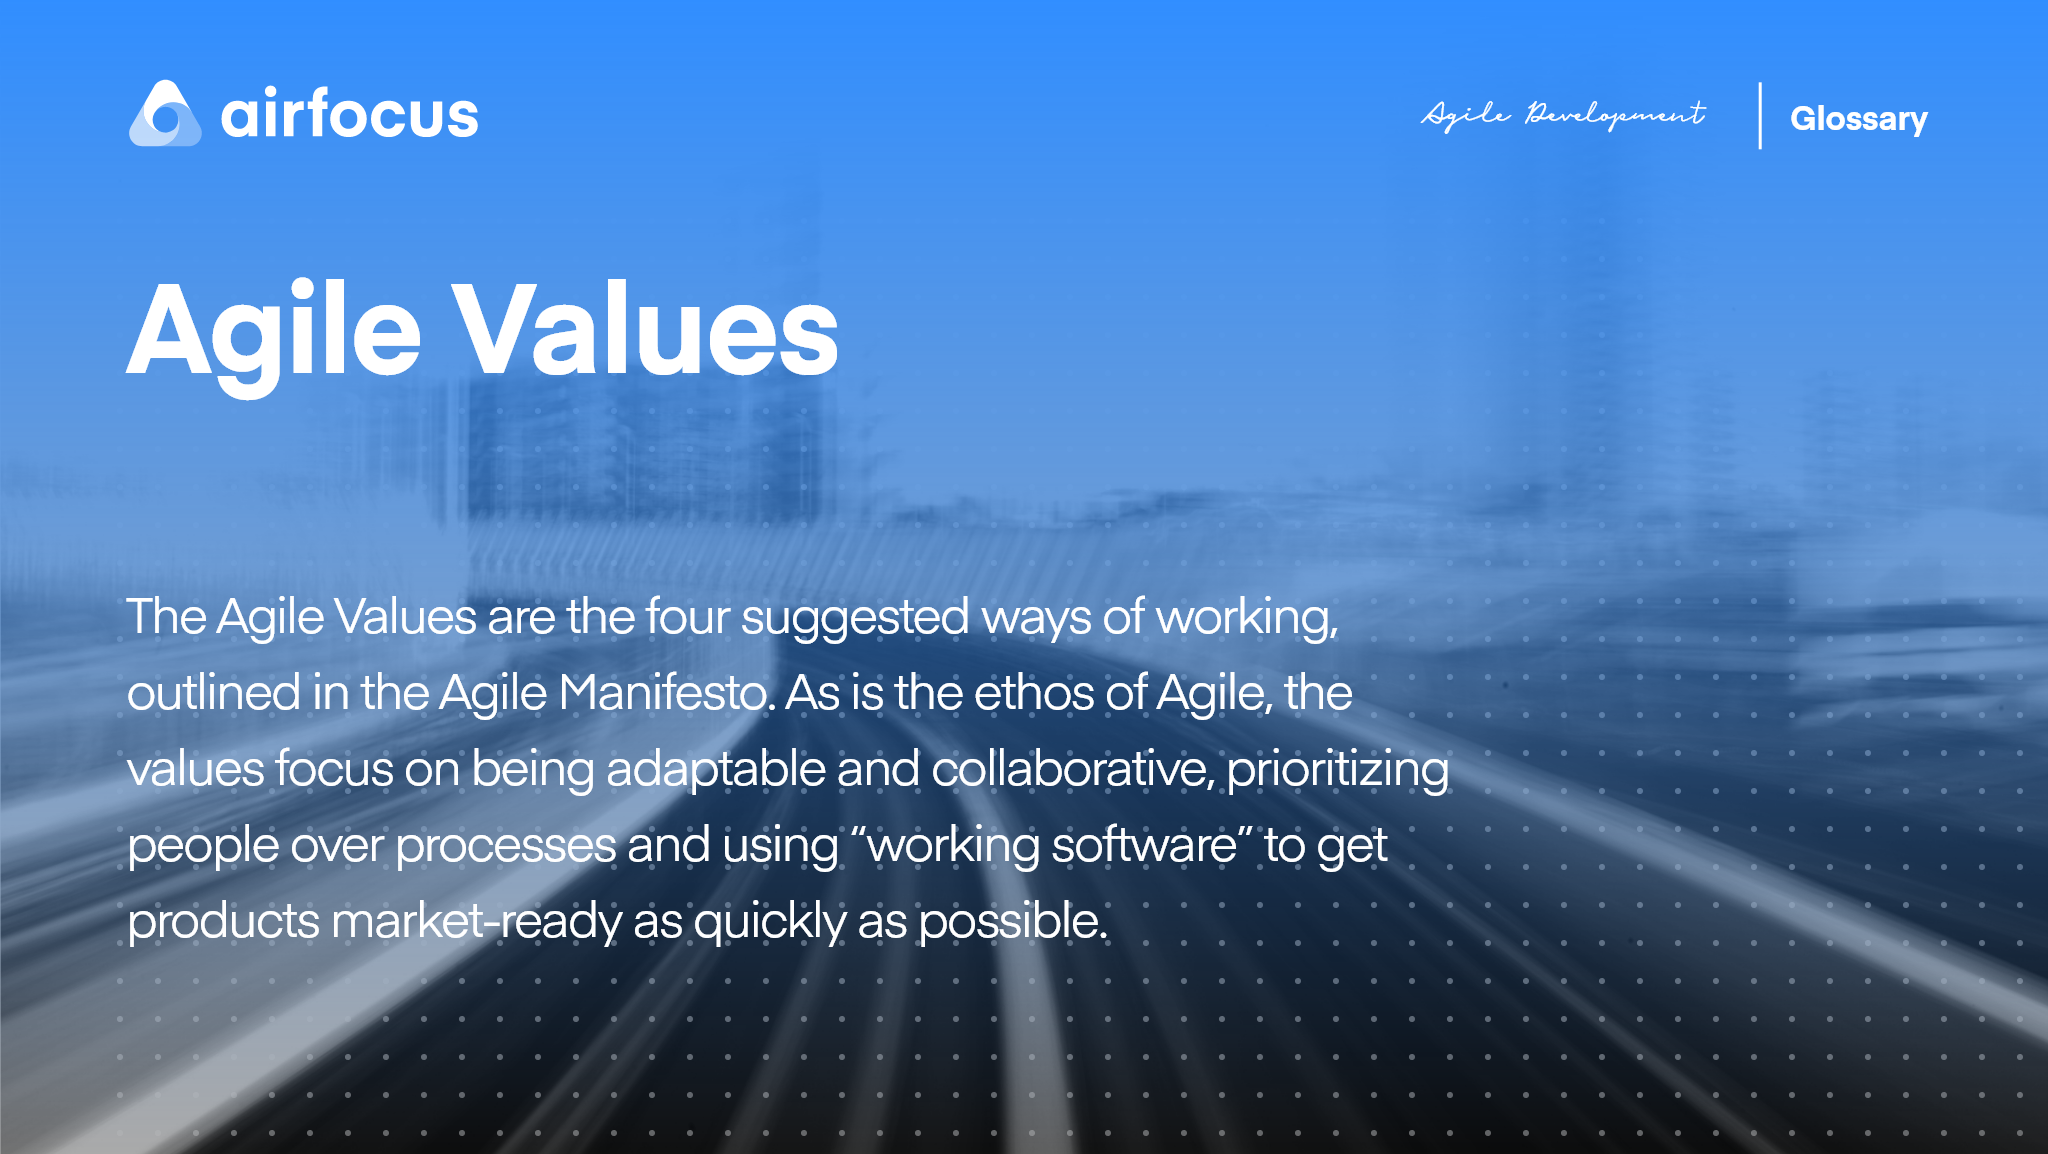 What Are Agile Values